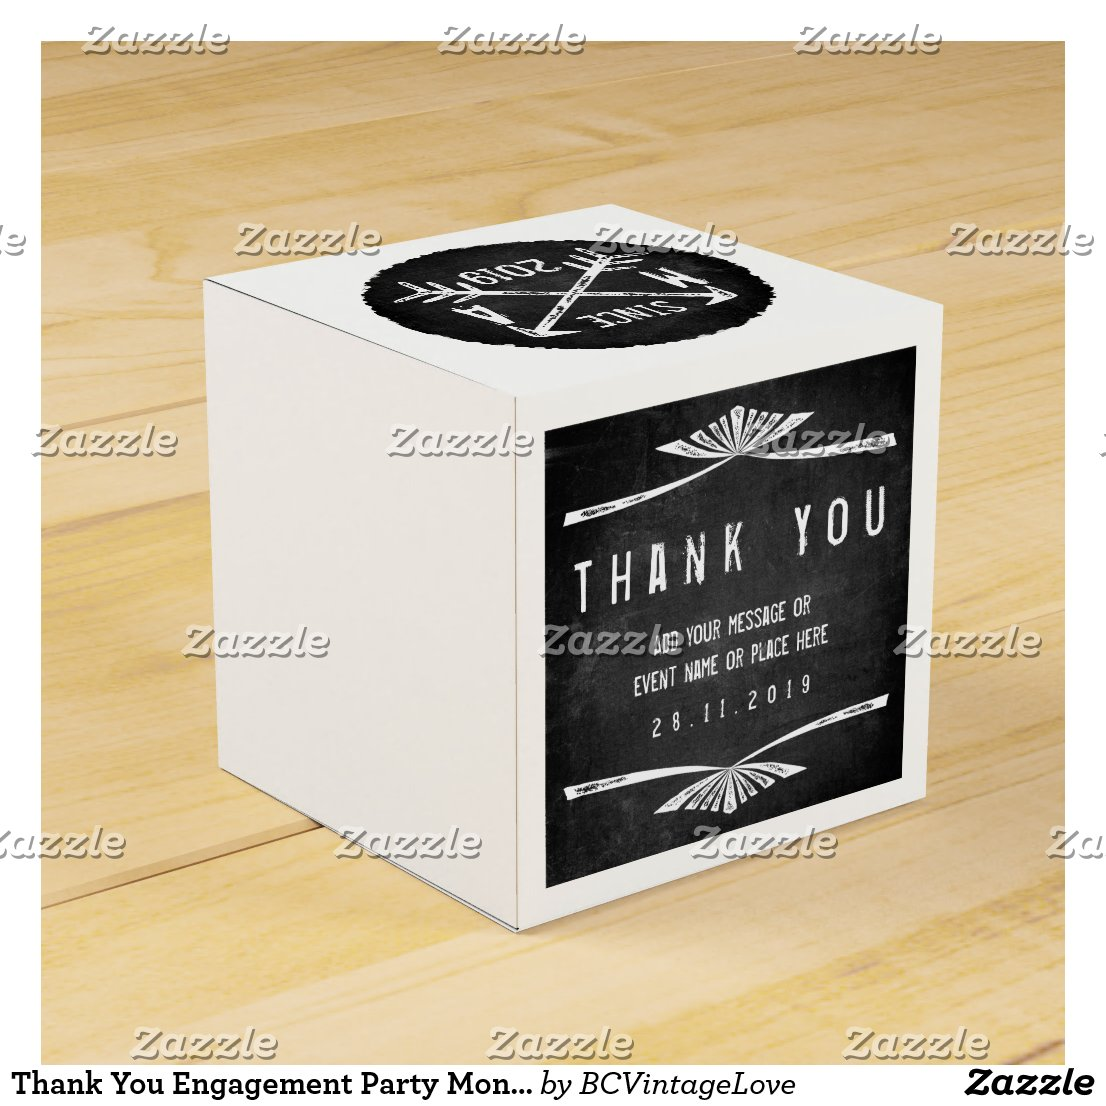 Thank You Engagement Party Monogram Arrows Chalk Favor Box